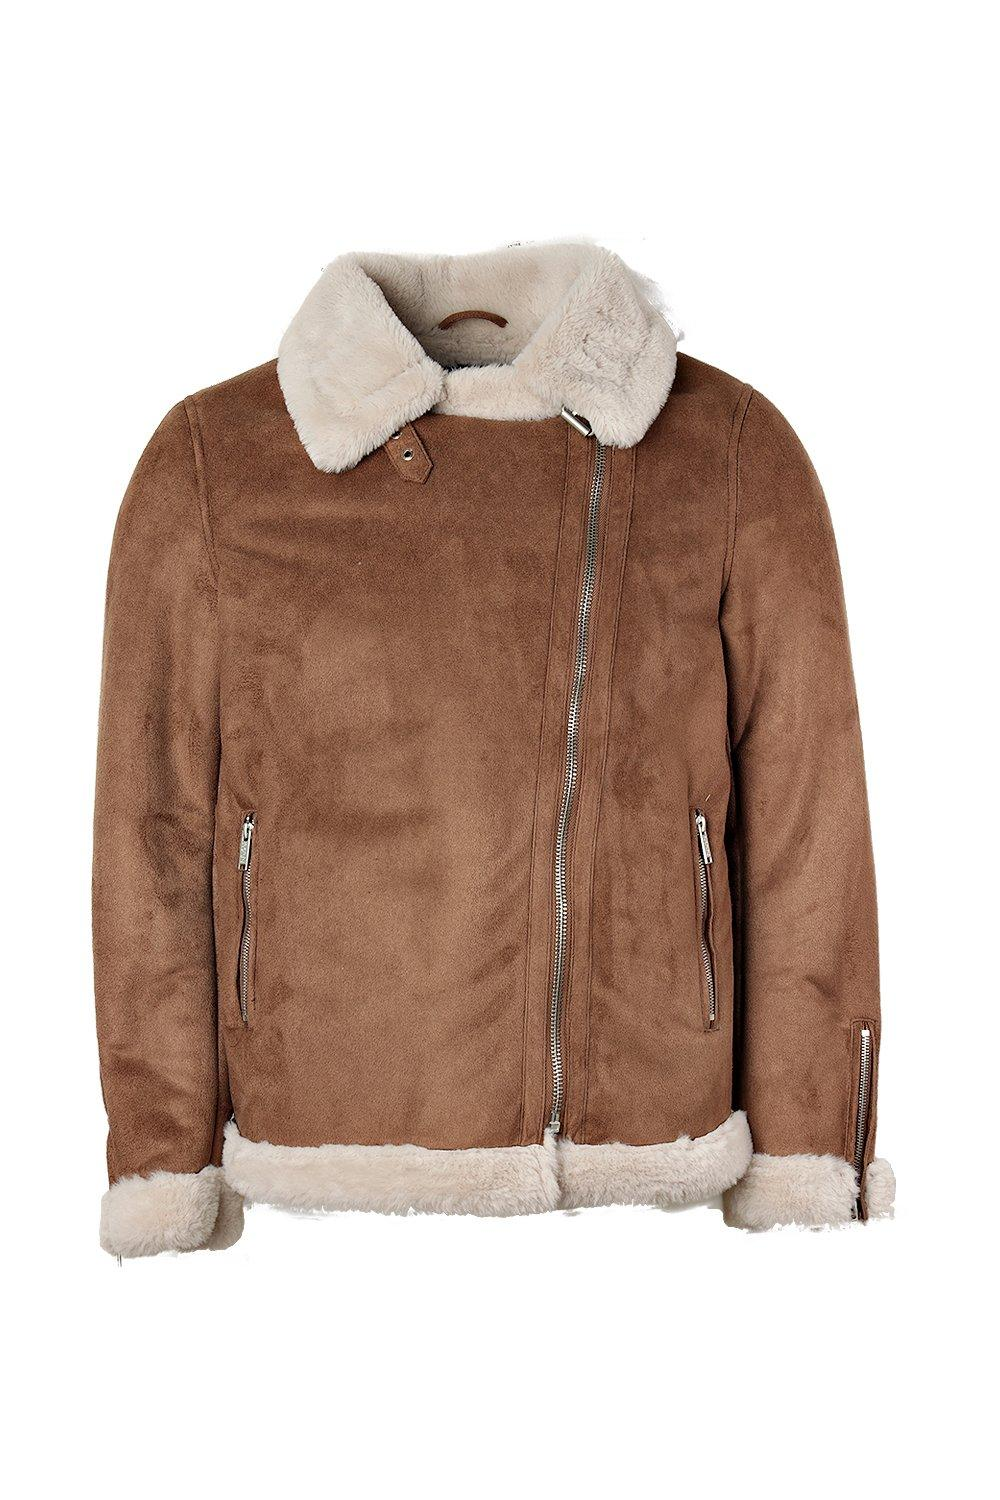 boohooMAN tan Faux Fur Lined Suede Aviator